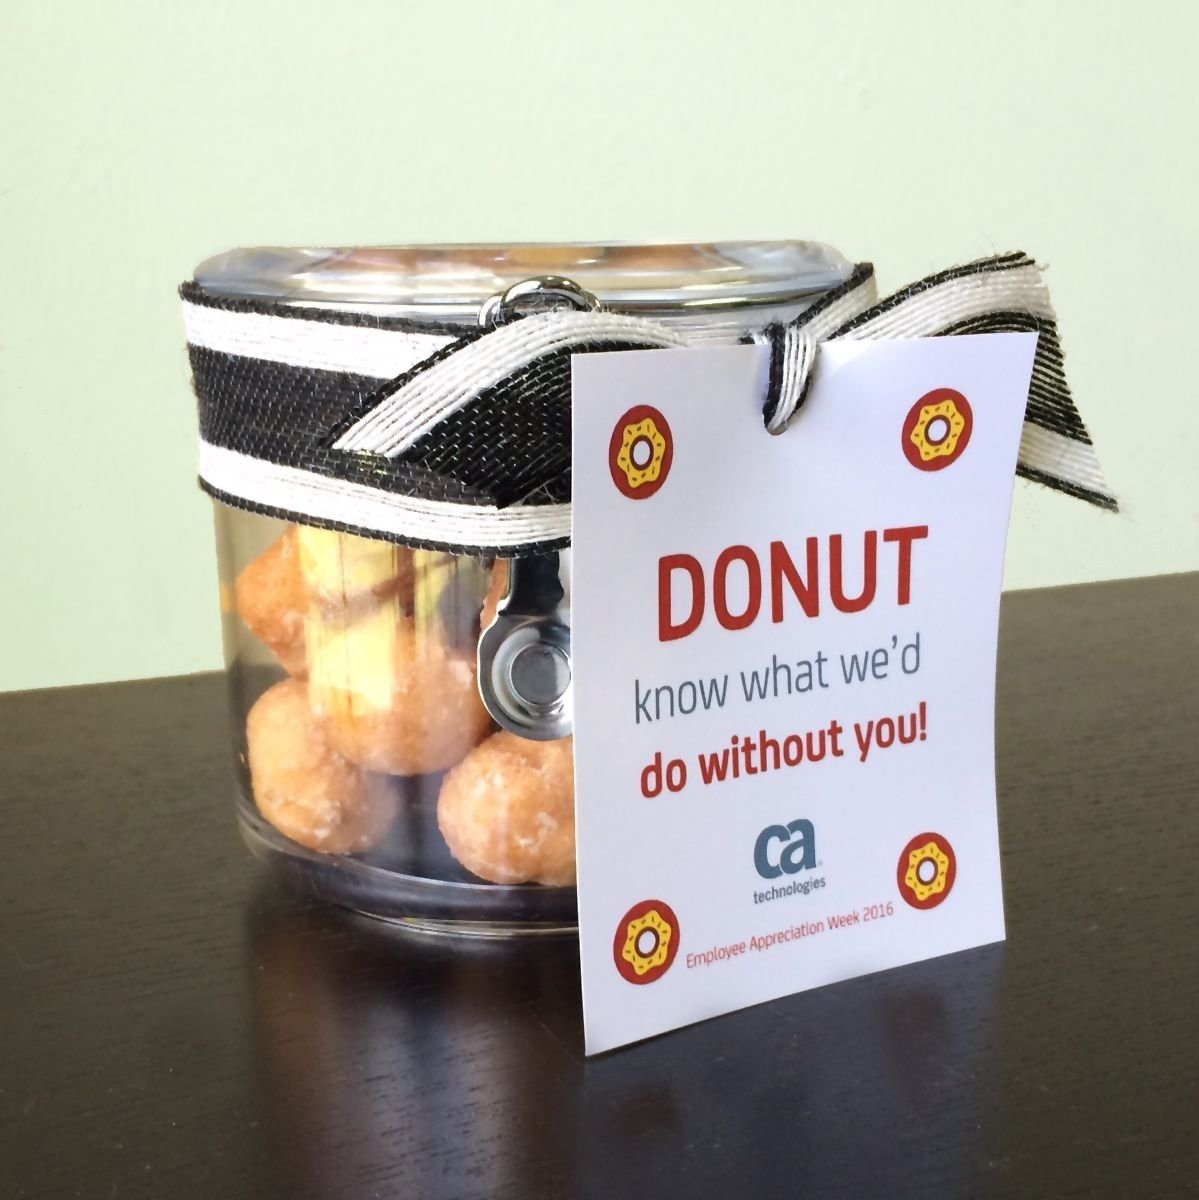 "donut know what we'd do without you!"" jar with donuts 